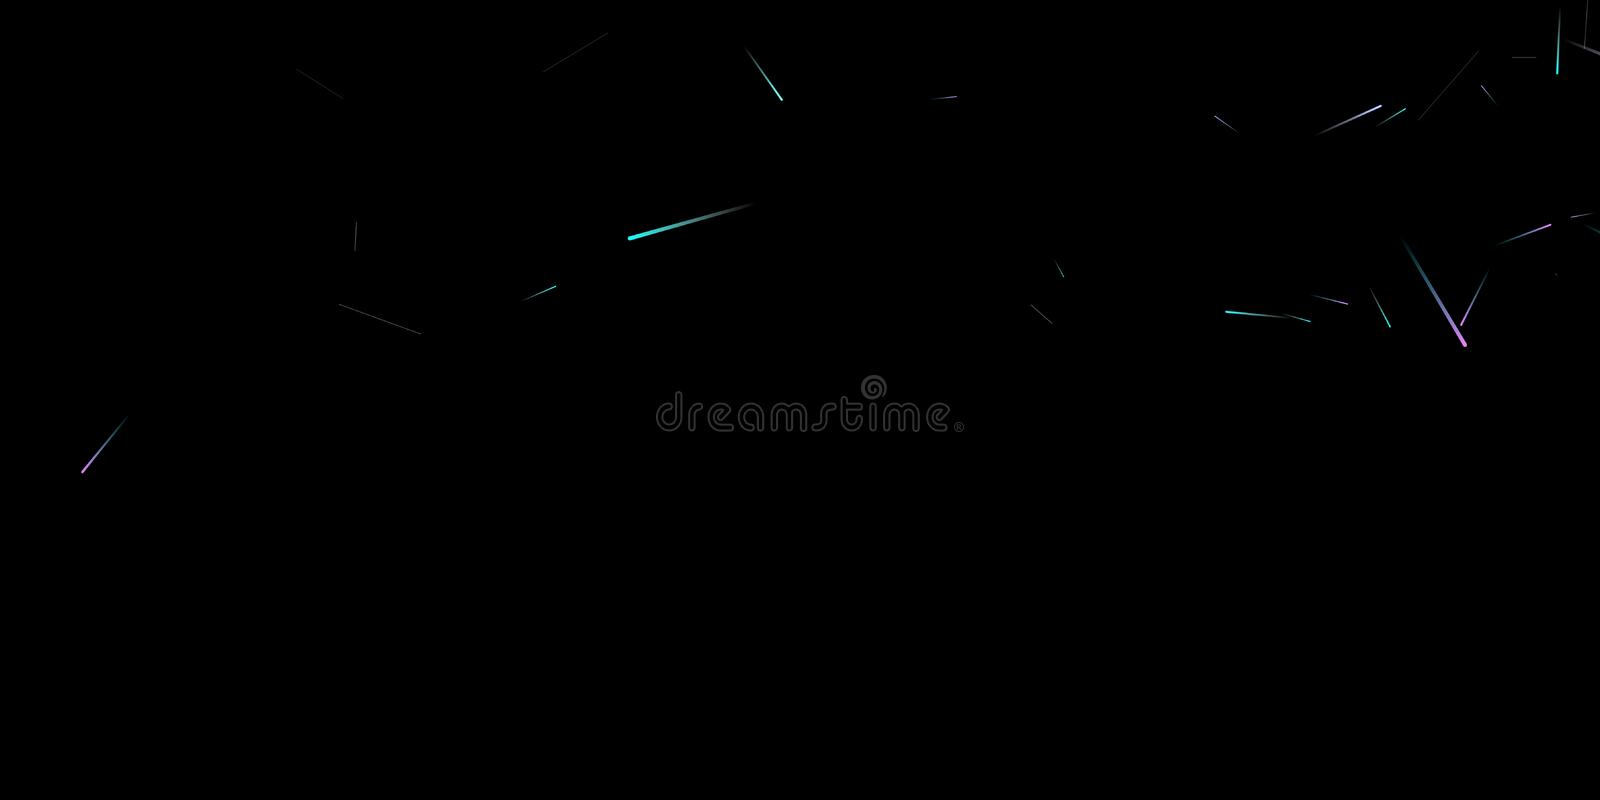 Fast Effect. Motion Neon Light Movement static. Fast Effect. Motion Neon Light Movement. Flow Light Trail. Neon Element Futuristic Design. Abstract Glowing Lines vector illustration